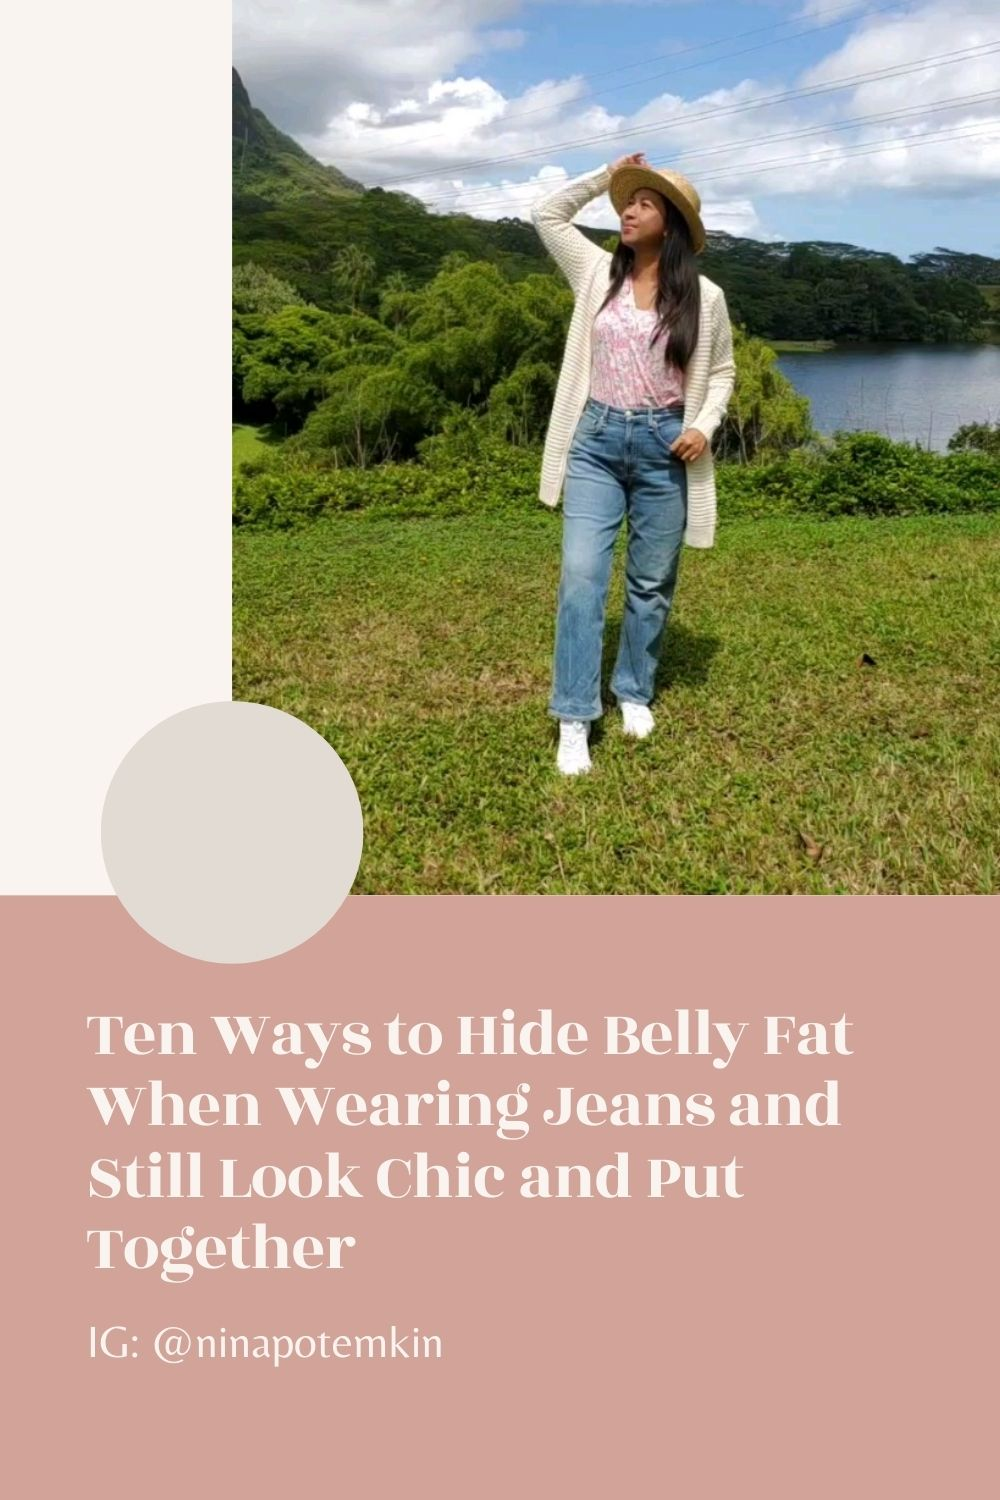 Ten Ways to Hide Belly Fat When Wearing Jeans